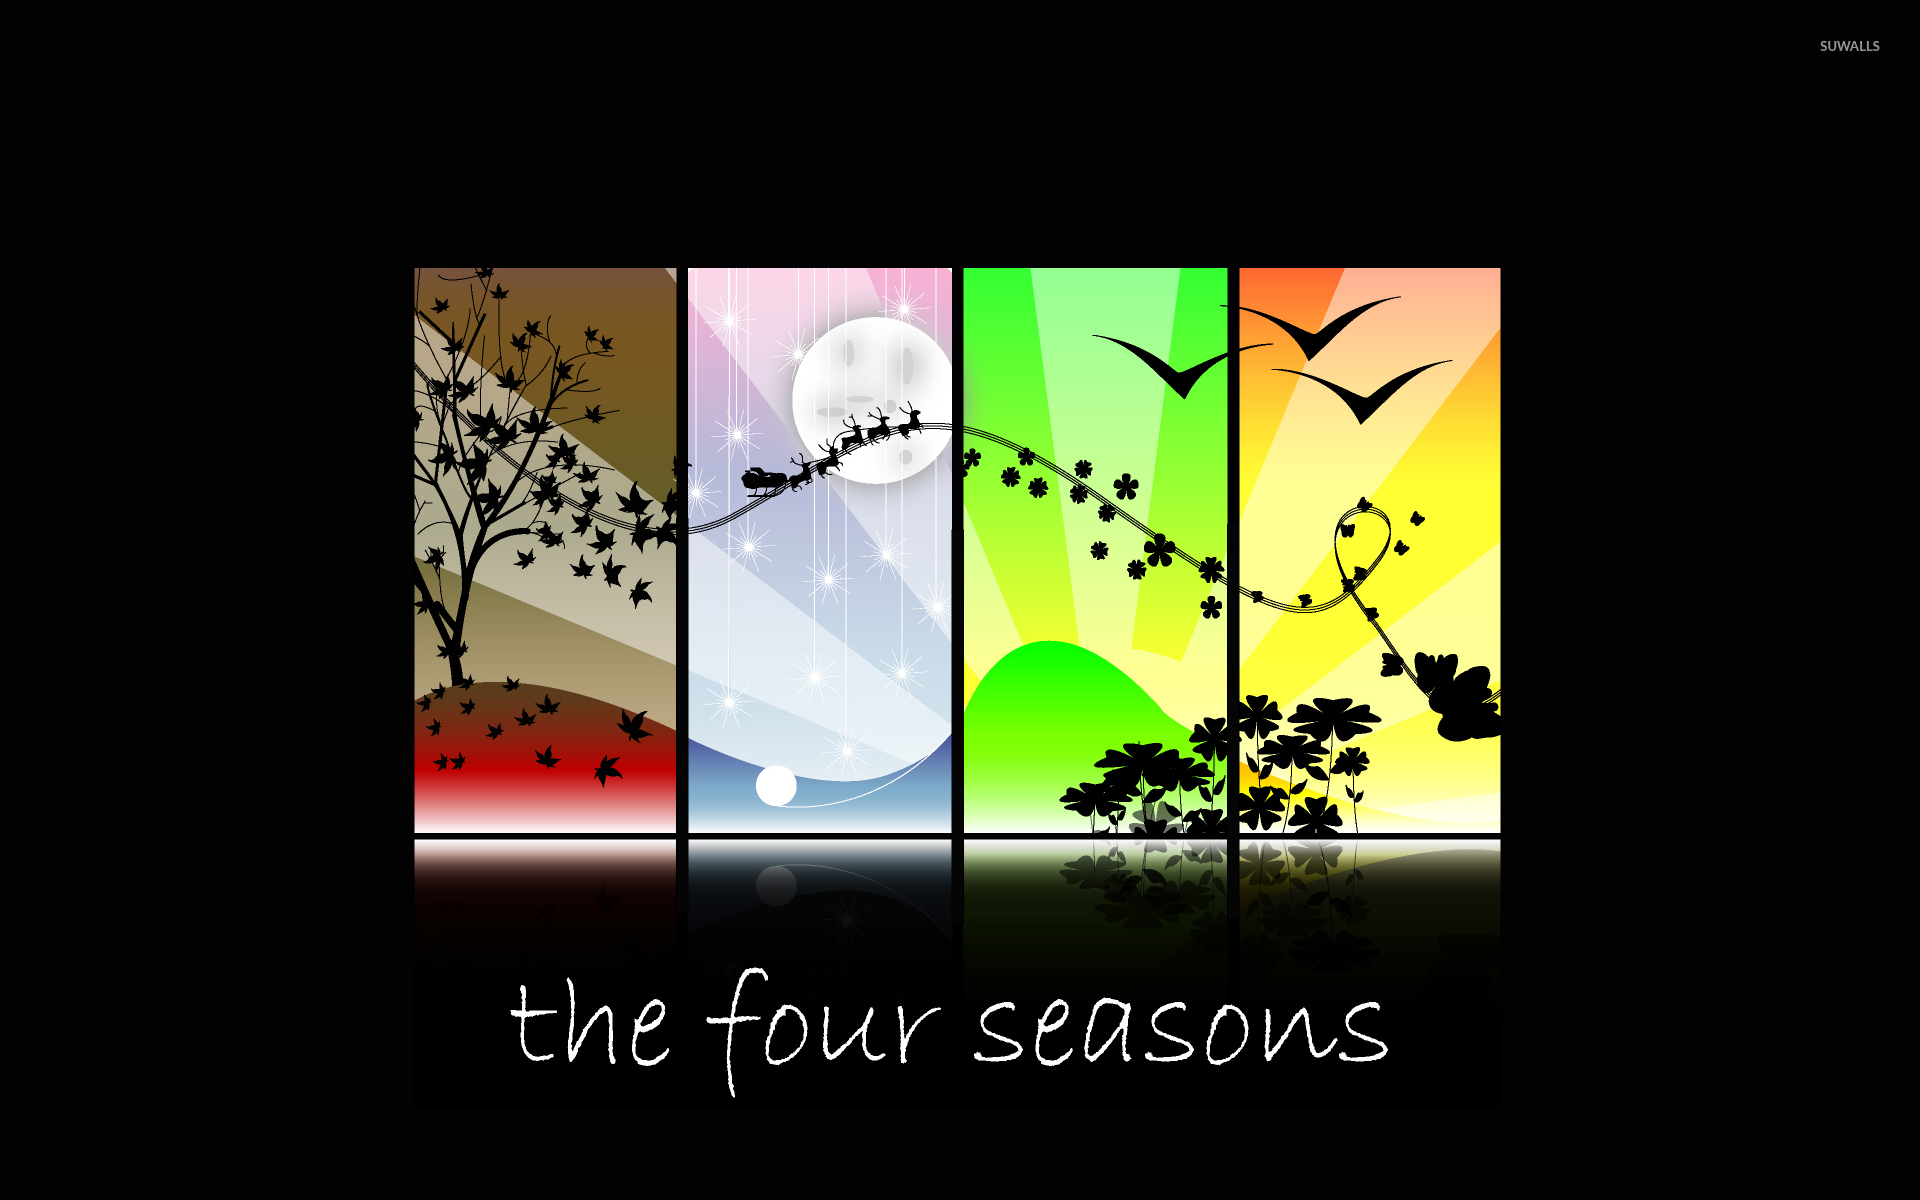 the four seasons wallpaper vector wallpapers 33139